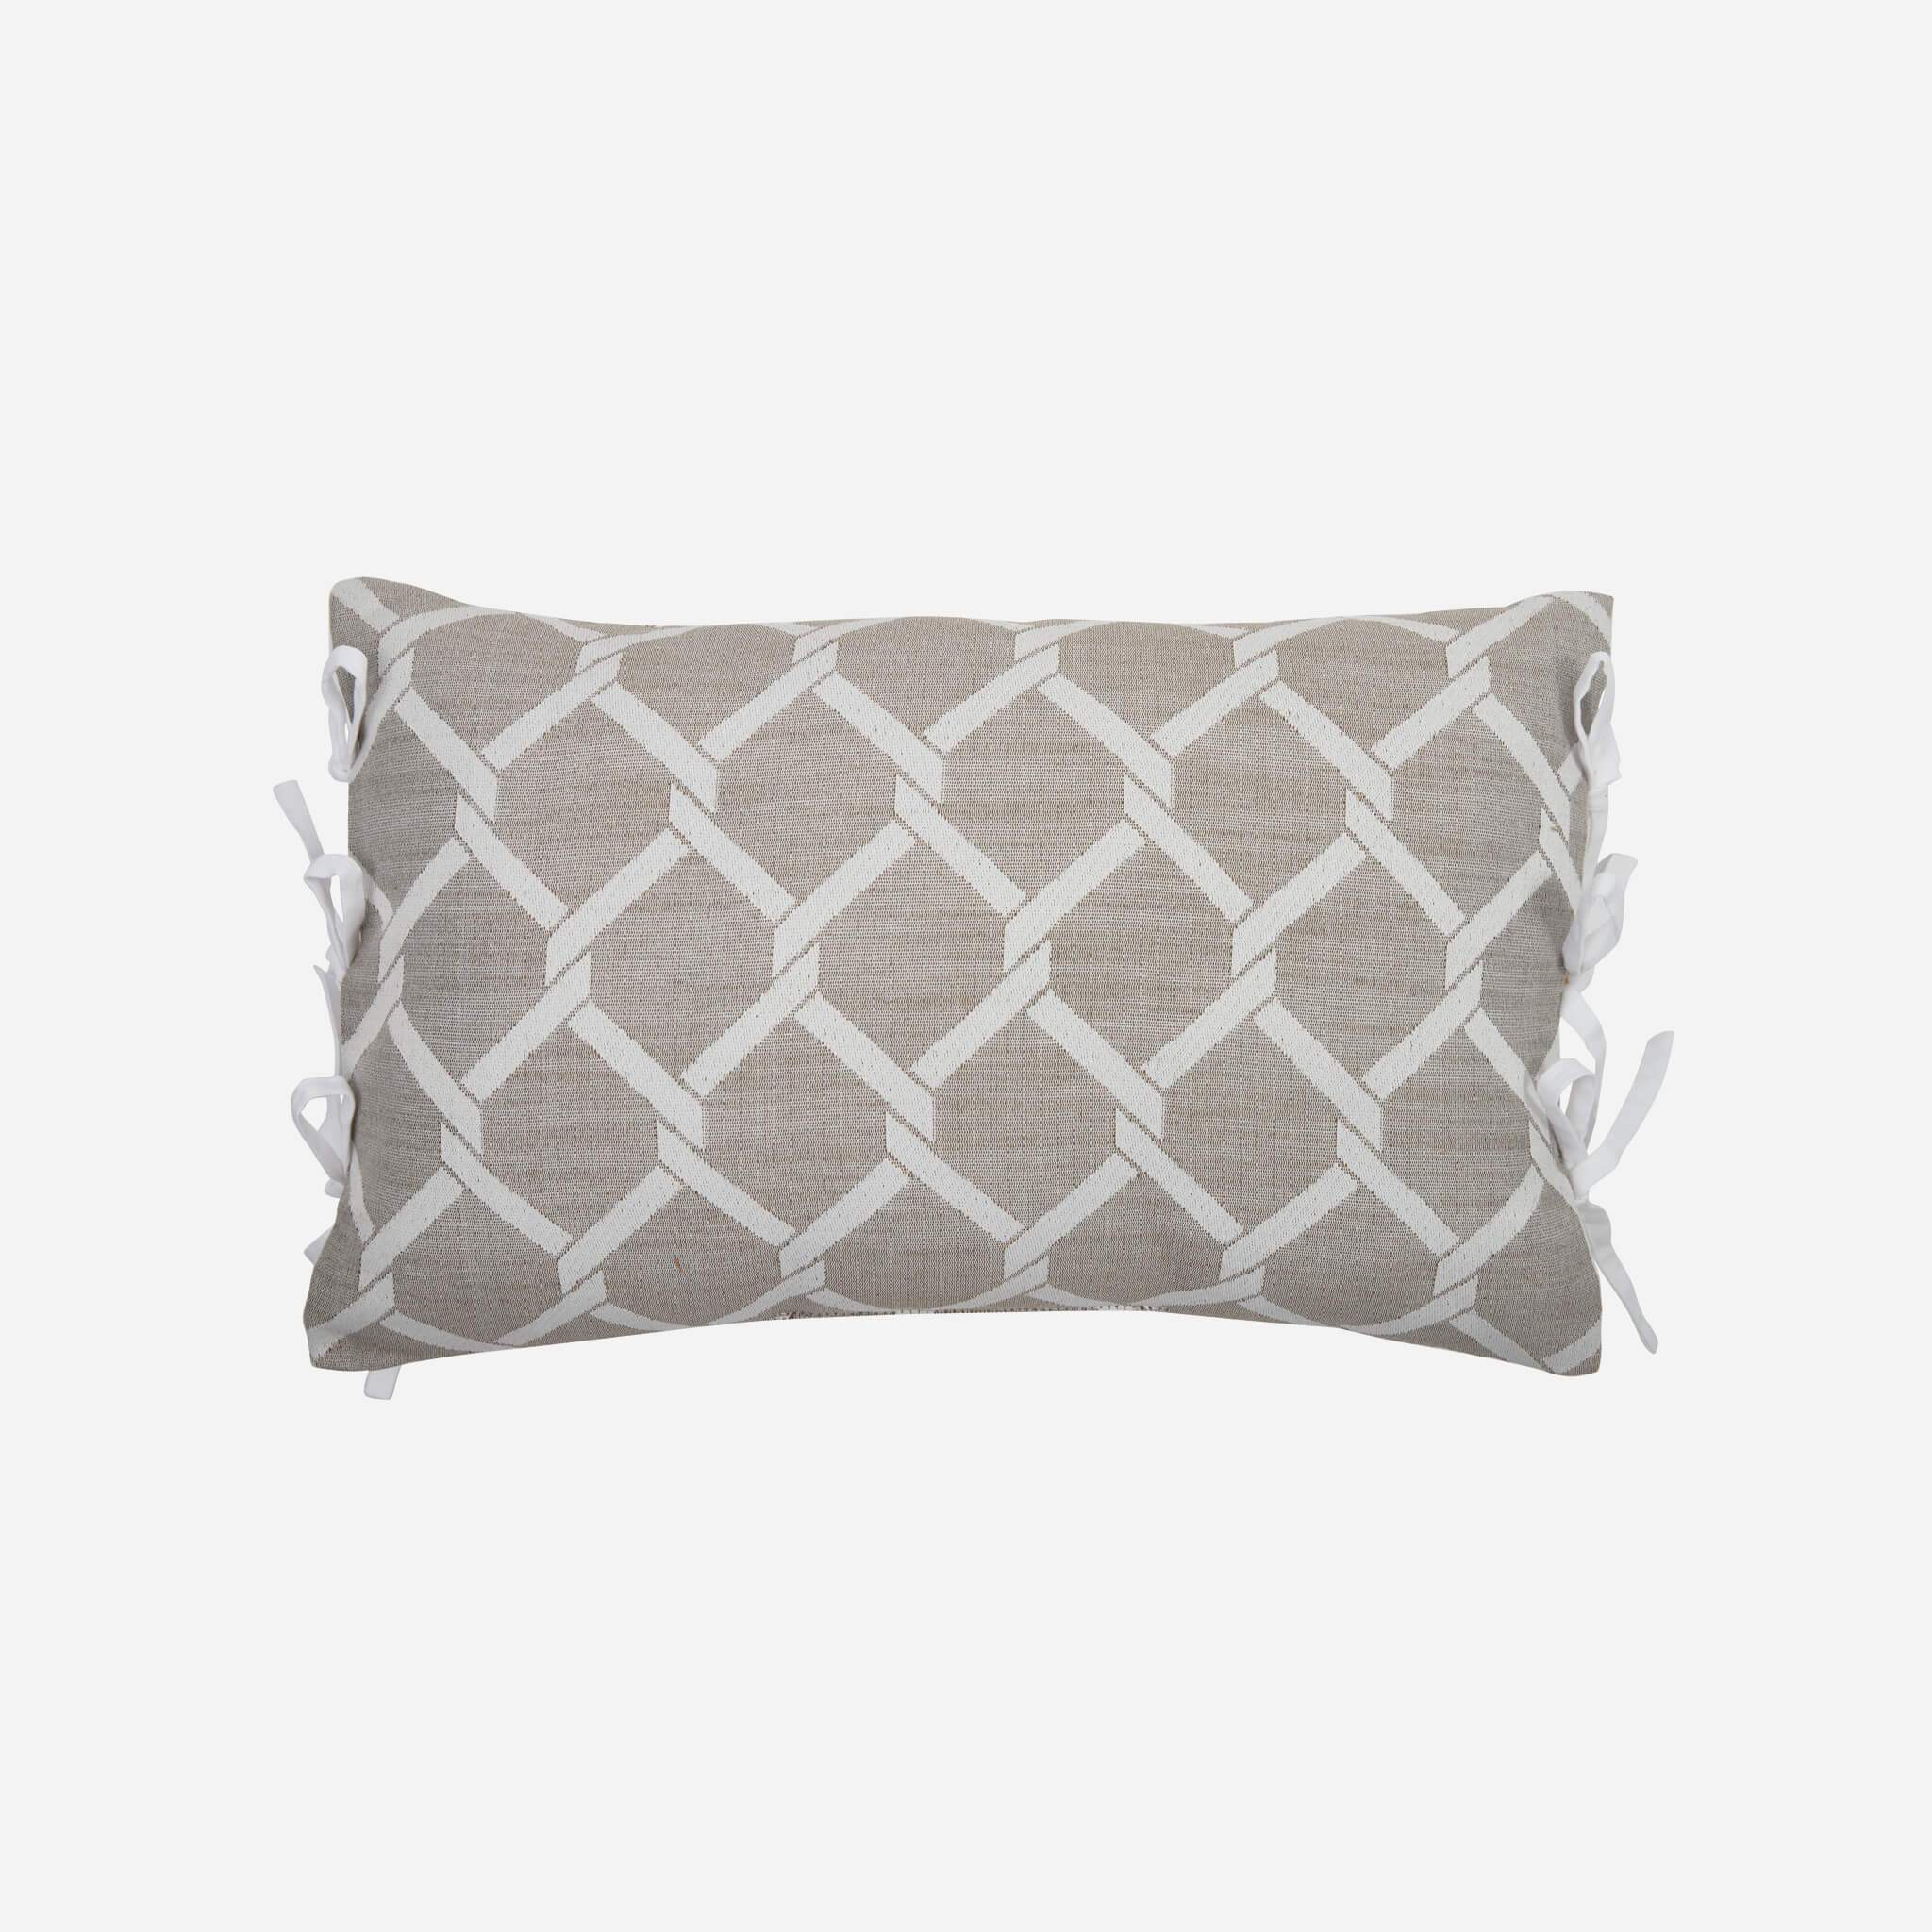 Layla Boudoir Pillow